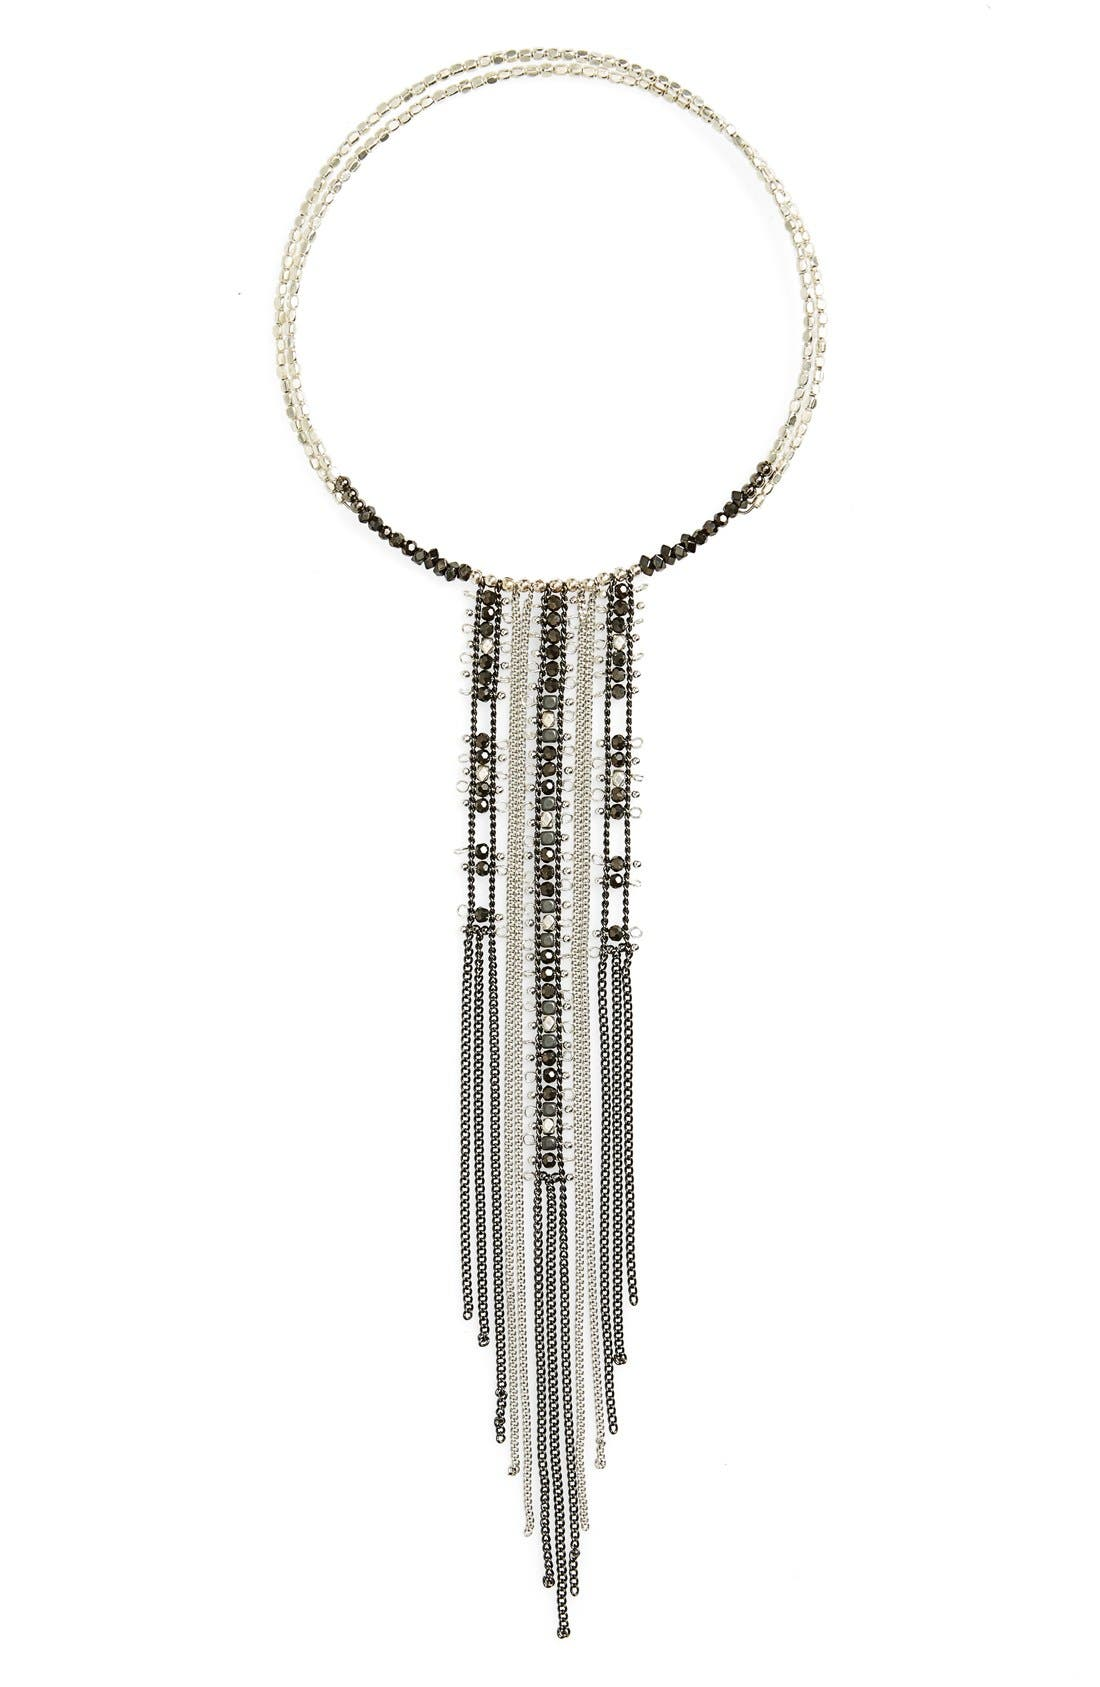 Alternate Image 1 Selected - Nakamol Design Metal Fringe Choker